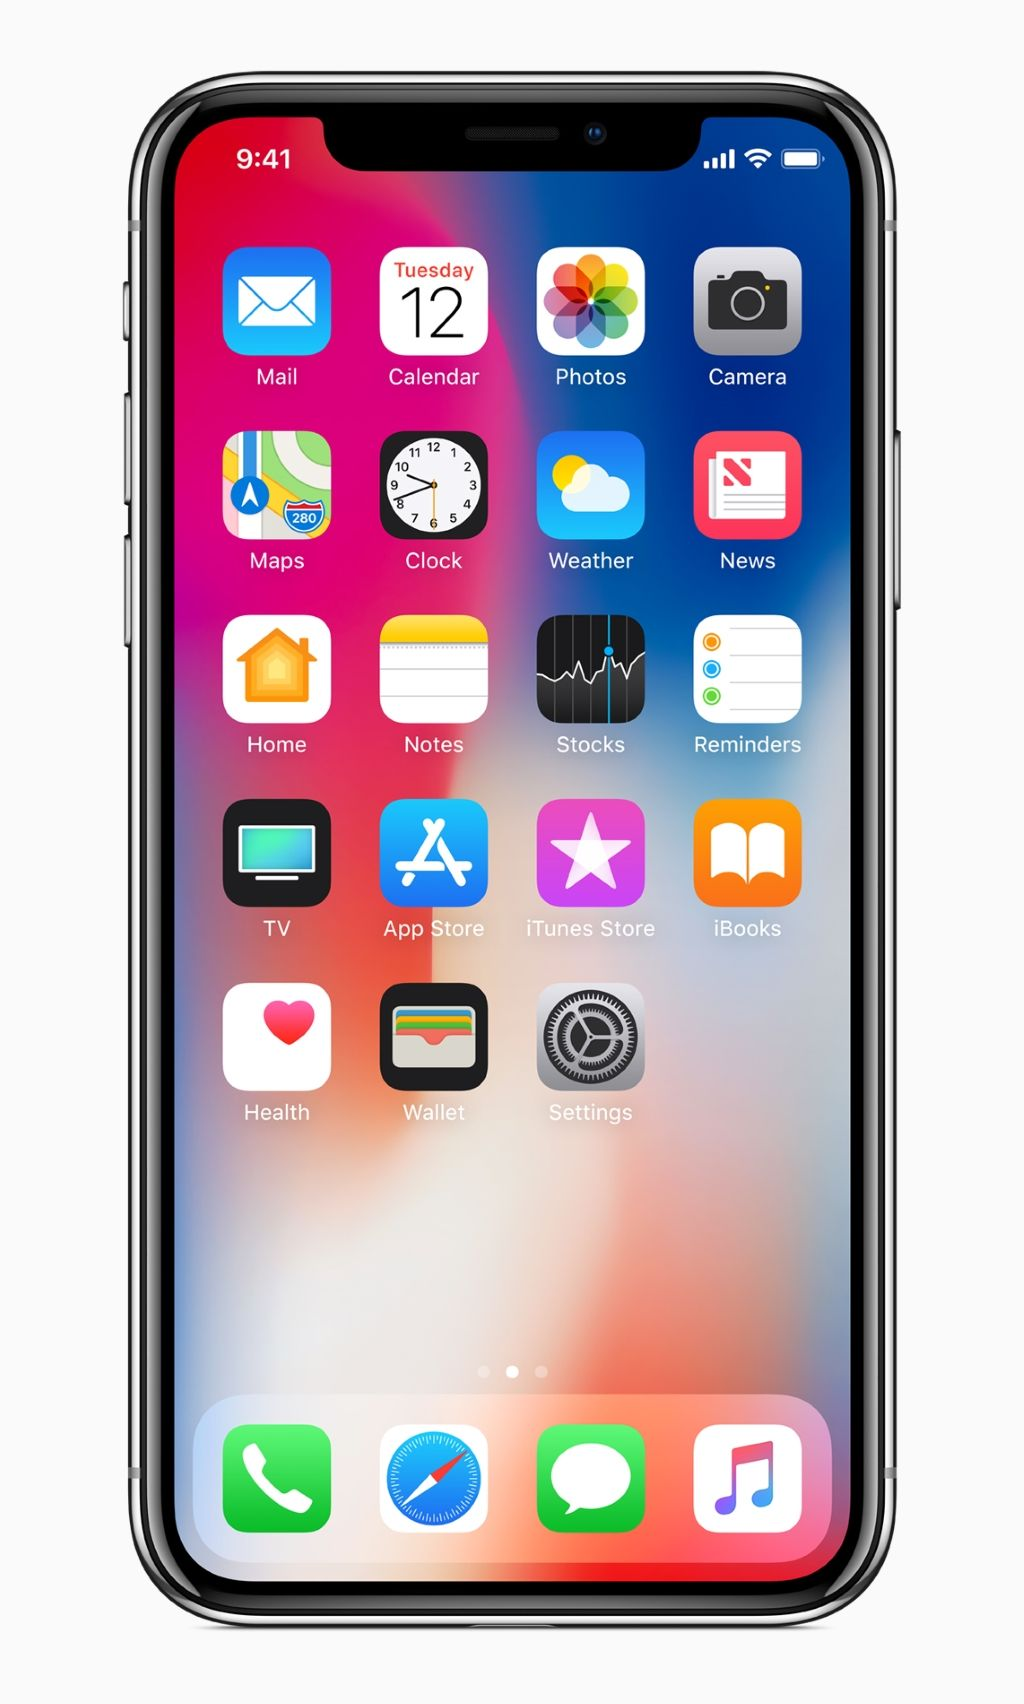 Apple iPhone X (Image credits to Apple)